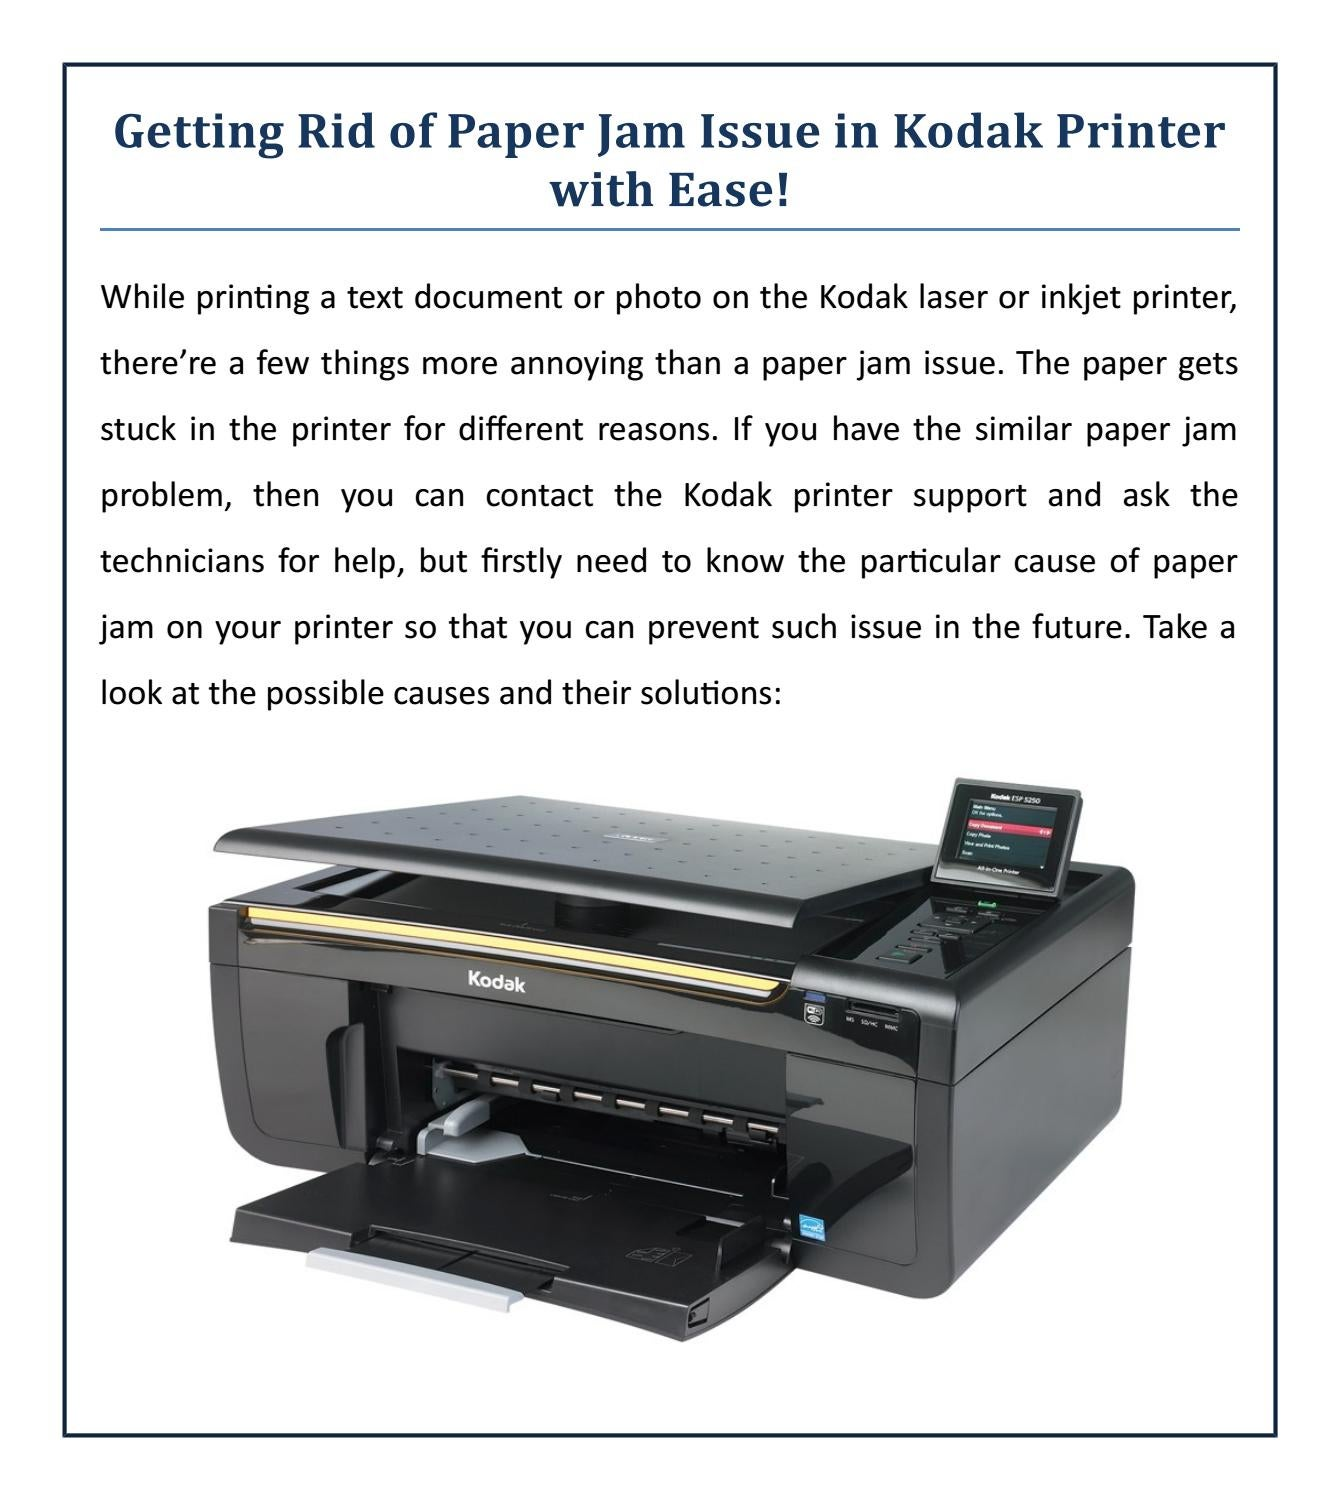 Getting Rid of Paper Jam Issue in Kodak Printer with Ease ...